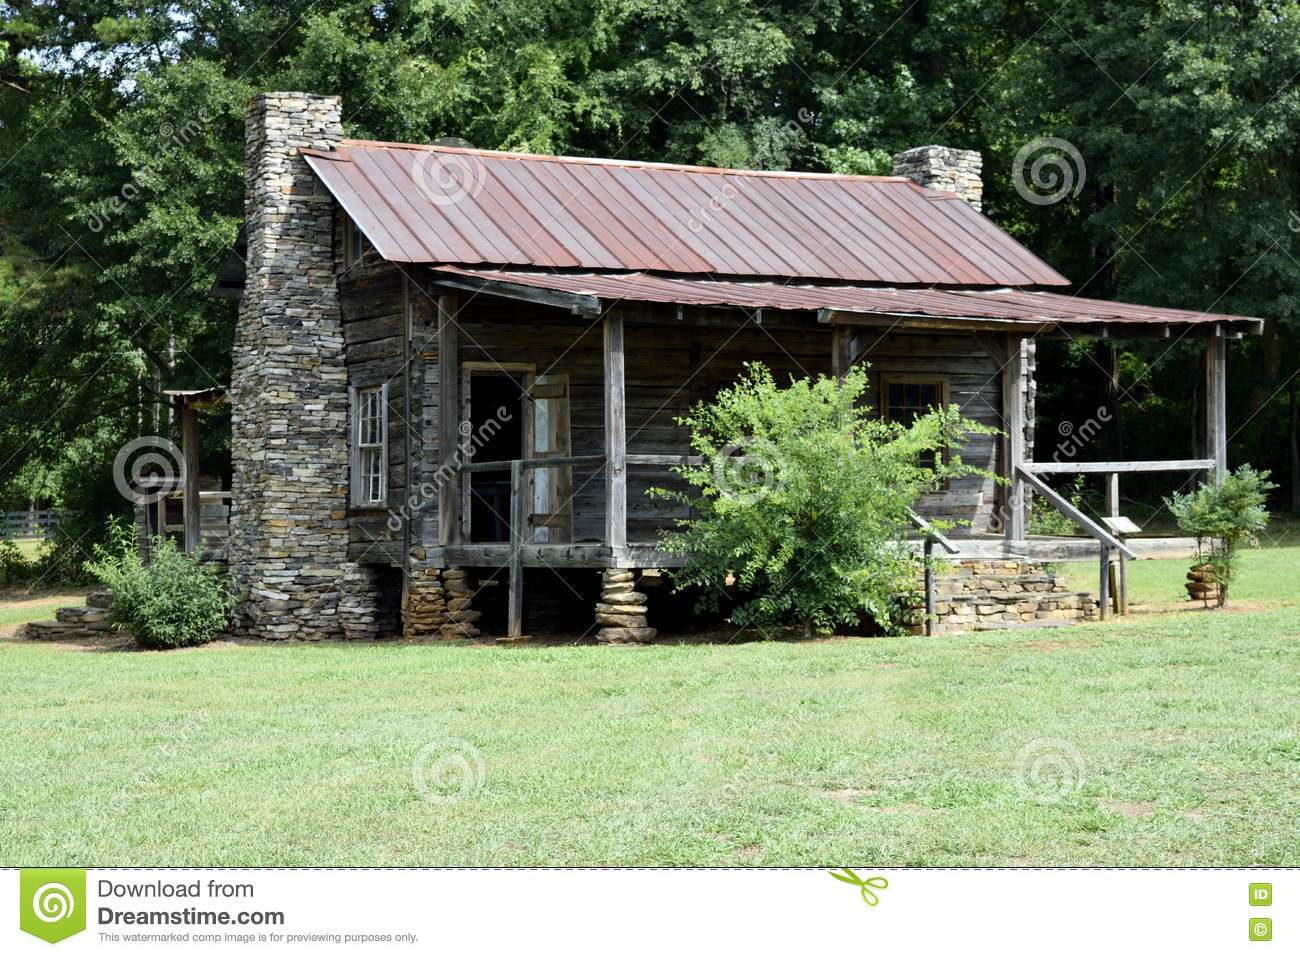 old rustic log cabin stock photo image of retro veranda 74685424. Black Bedroom Furniture Sets. Home Design Ideas